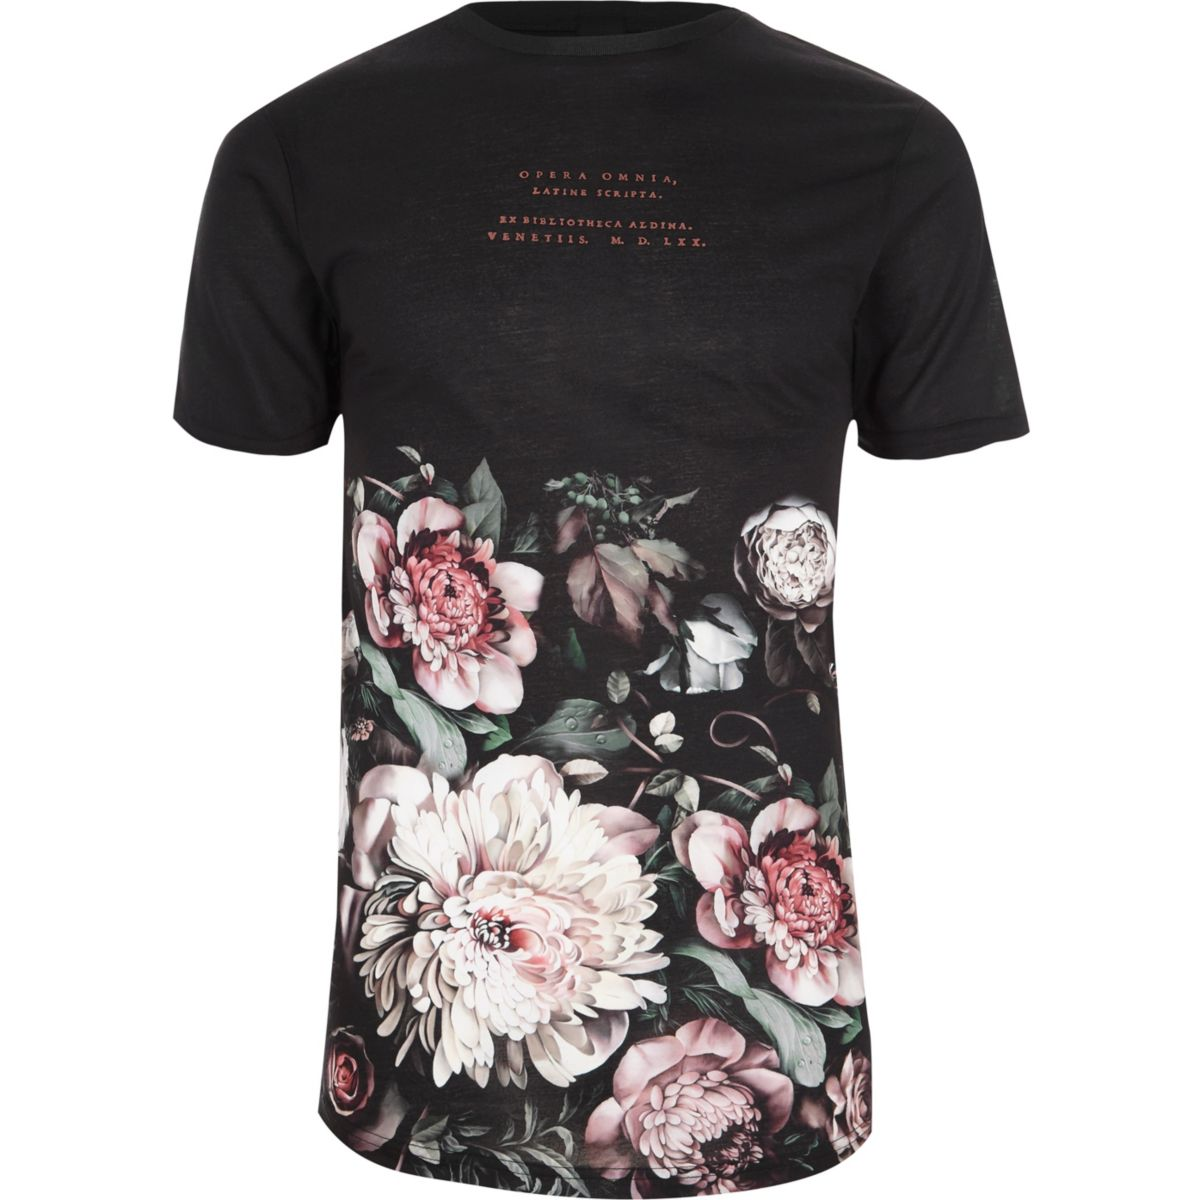 Black floral print crew neck t shirt seasonal offers for Black floral print shirt